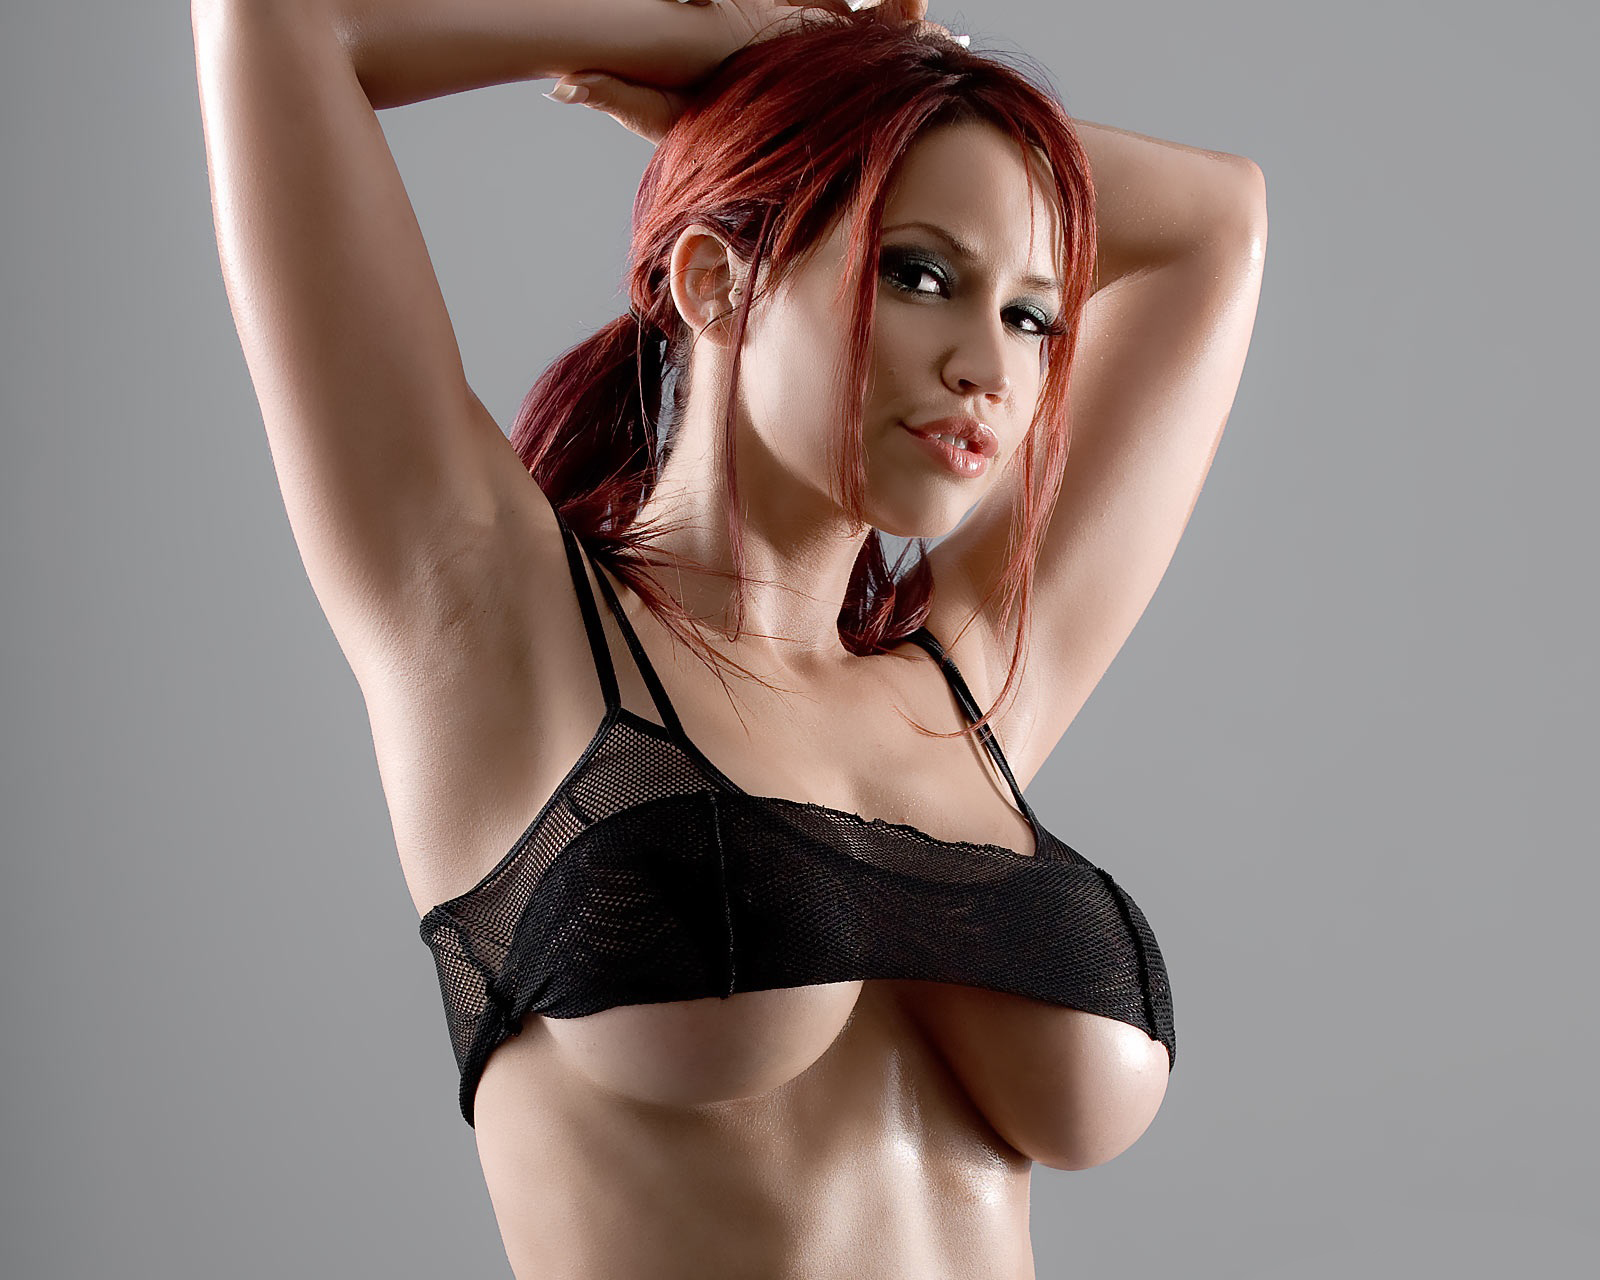 bianca beauchamp video